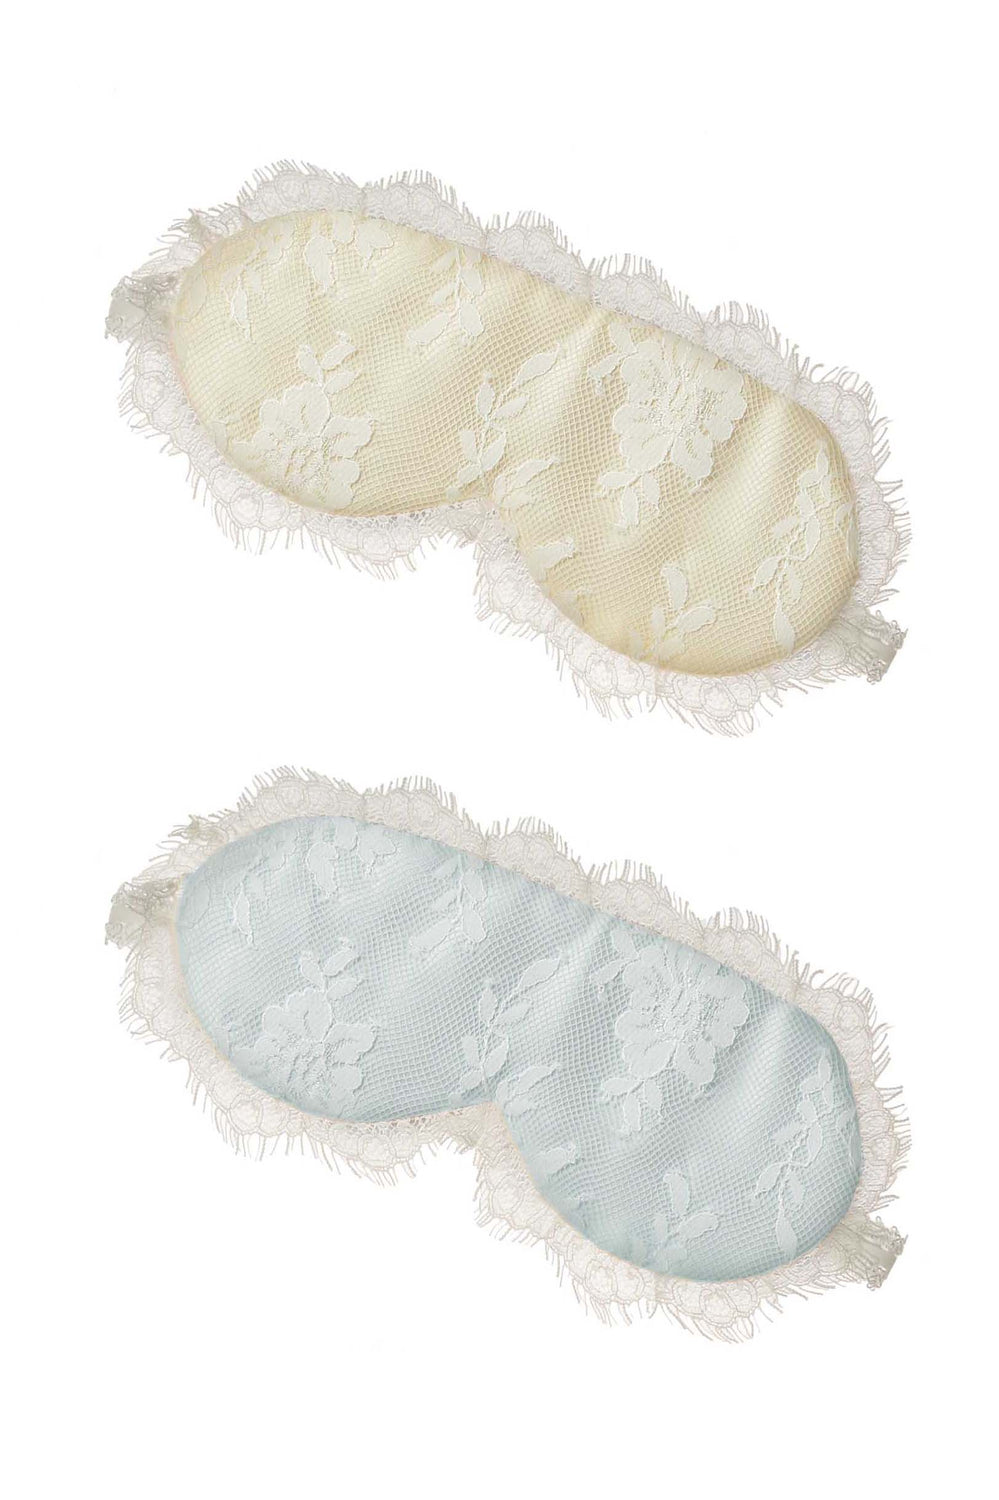 Swan Queen lace & silk Sleep mask in Robin egg blue or Champagne